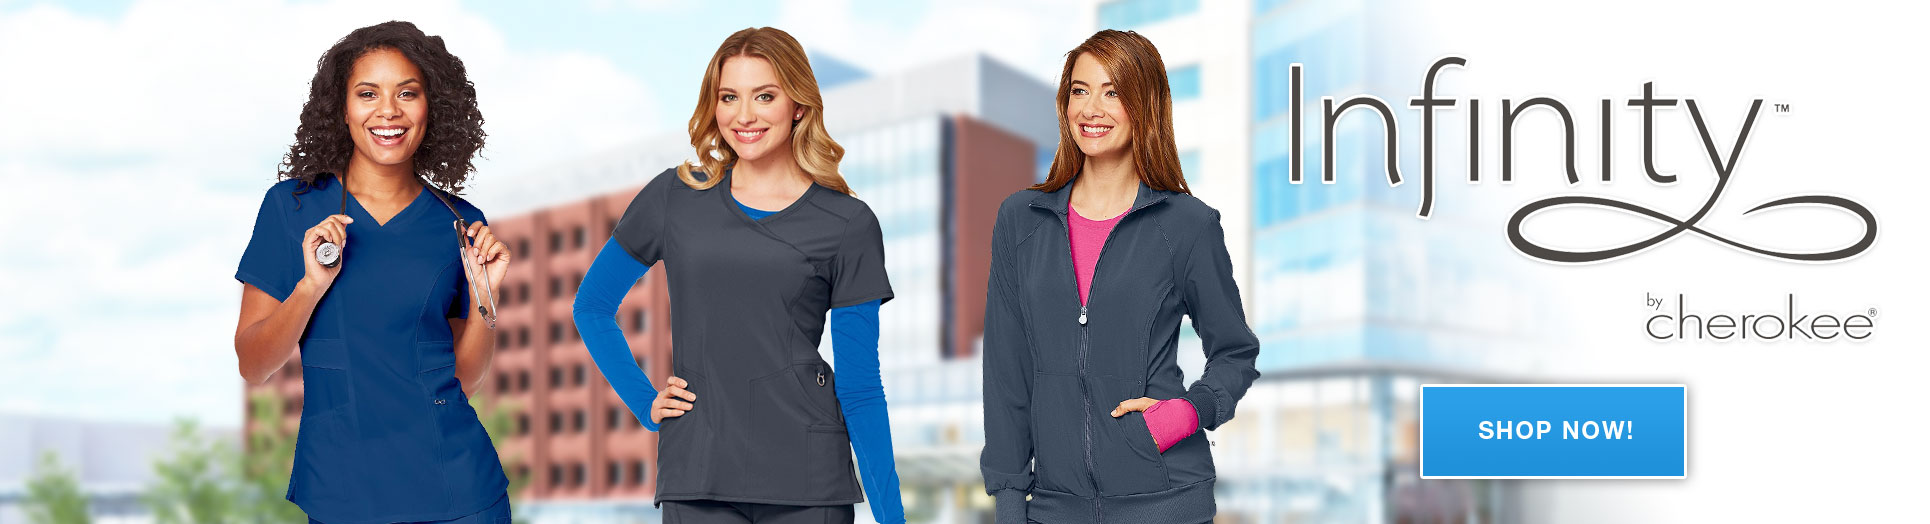 shop-infinity-scrubs-updated.jpg